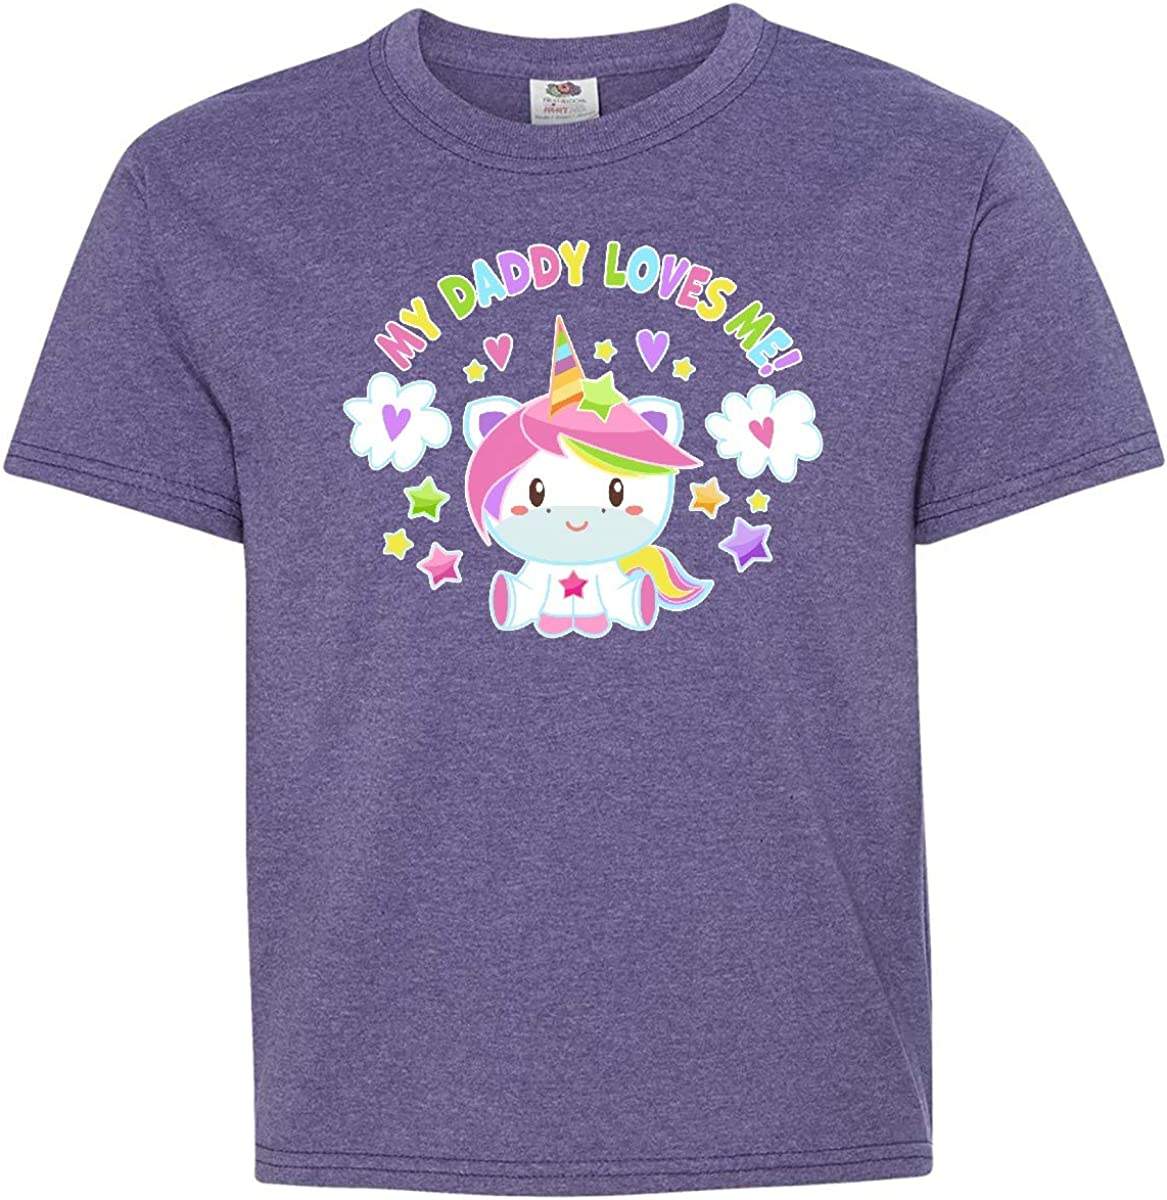 inktastic Little Rainbow Colorful Baby T-Shirt